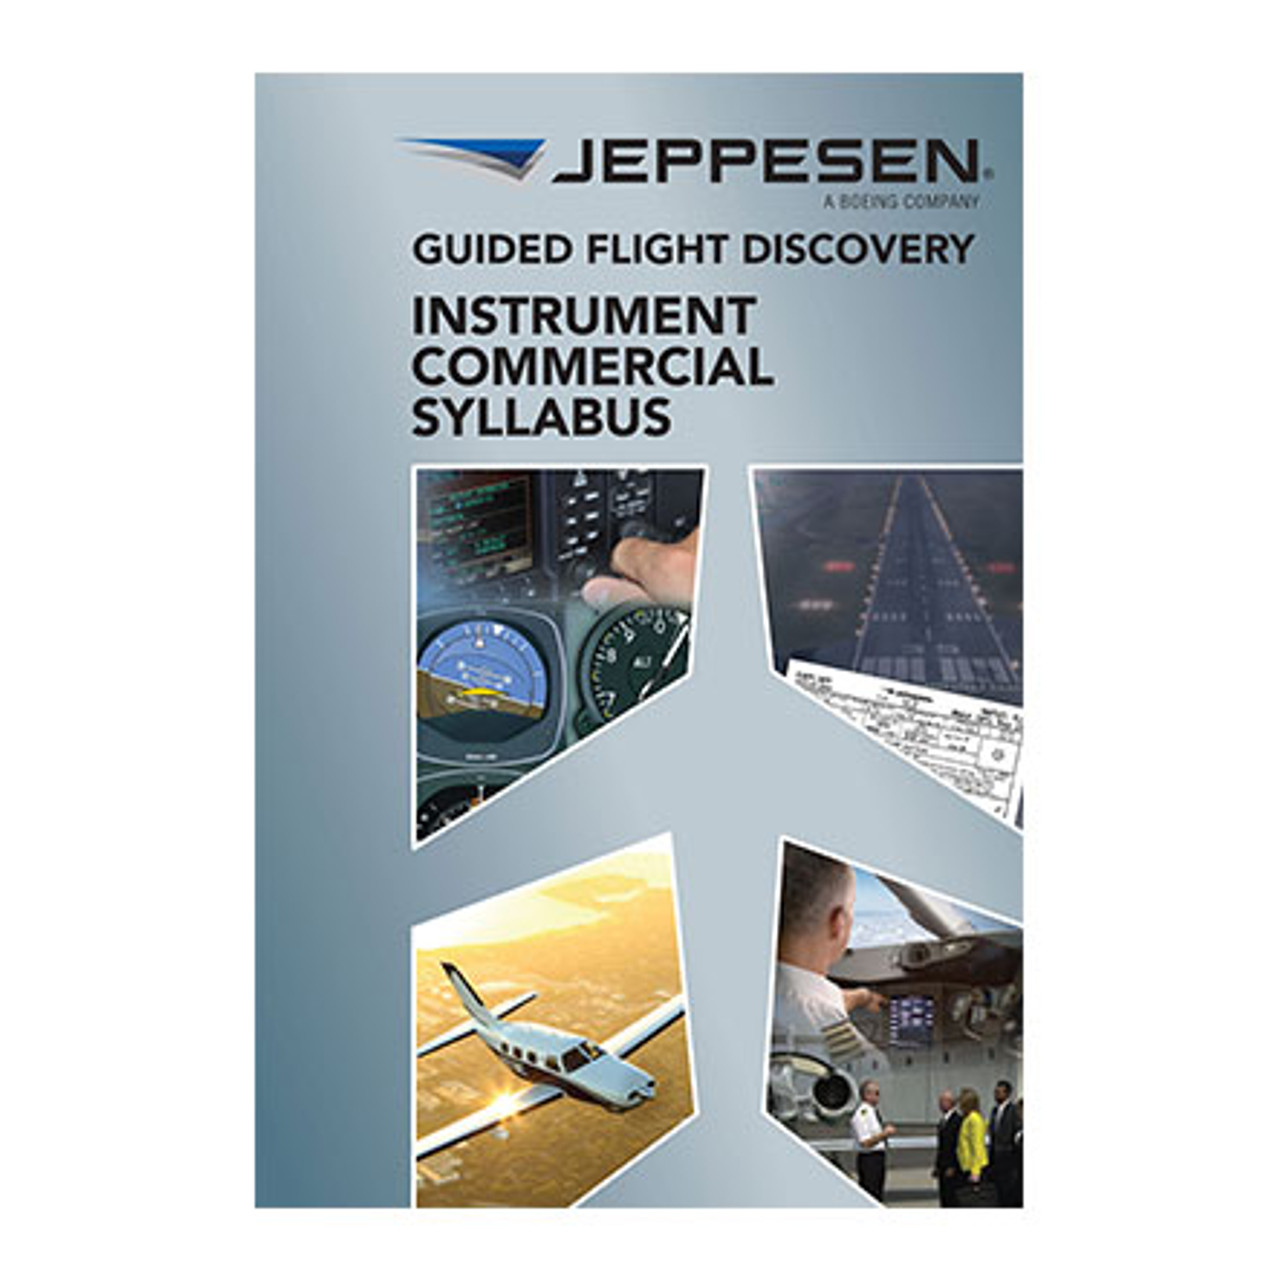 Jeppesen GFD Instrument / Commercial Syllabus